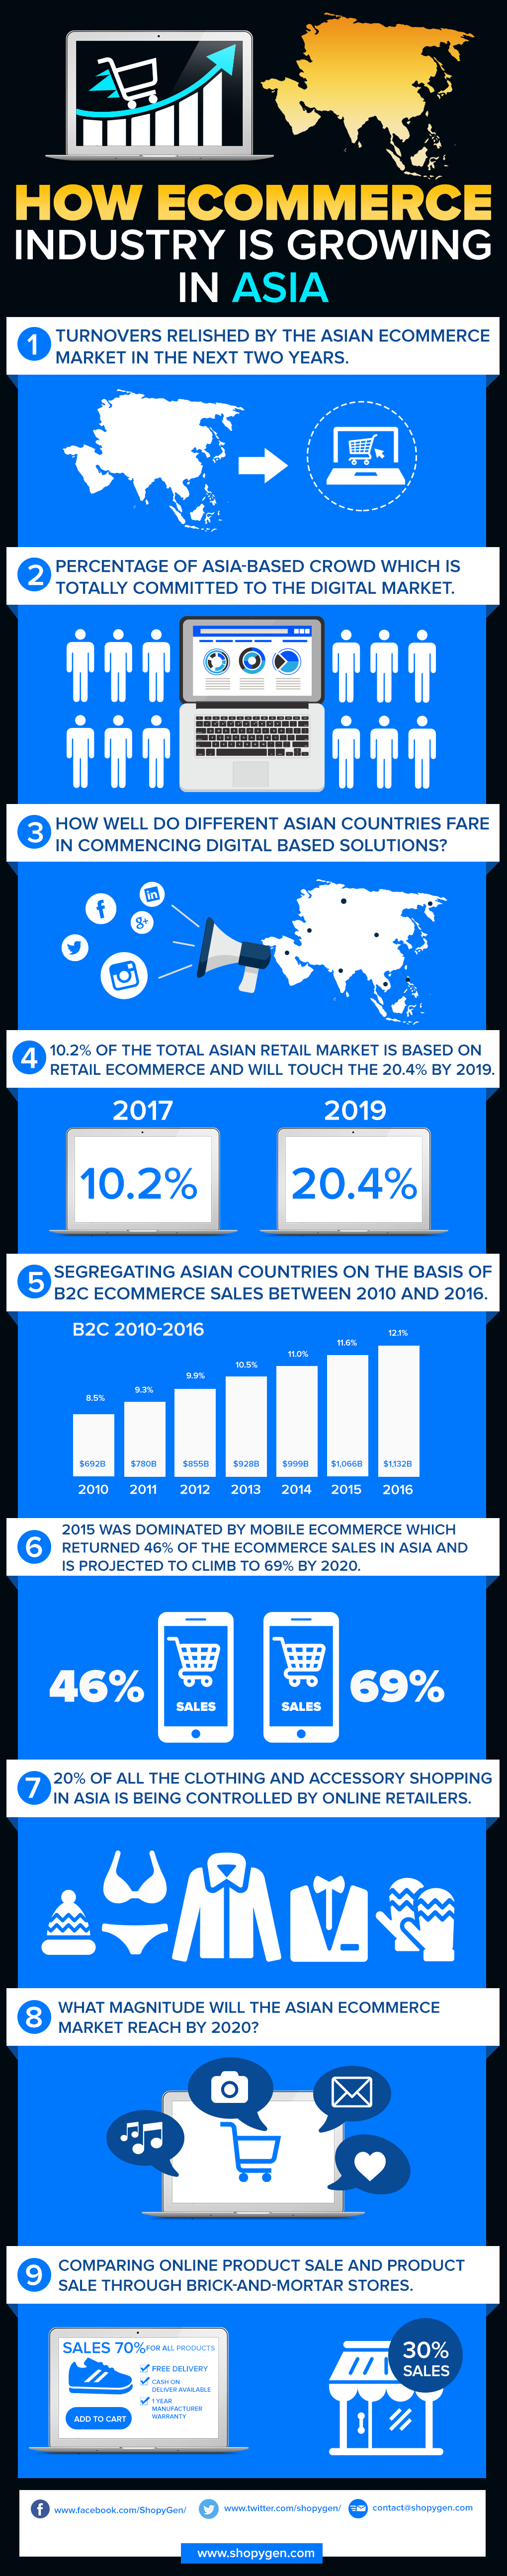 How Ecommerce Industry is Growing in Asia